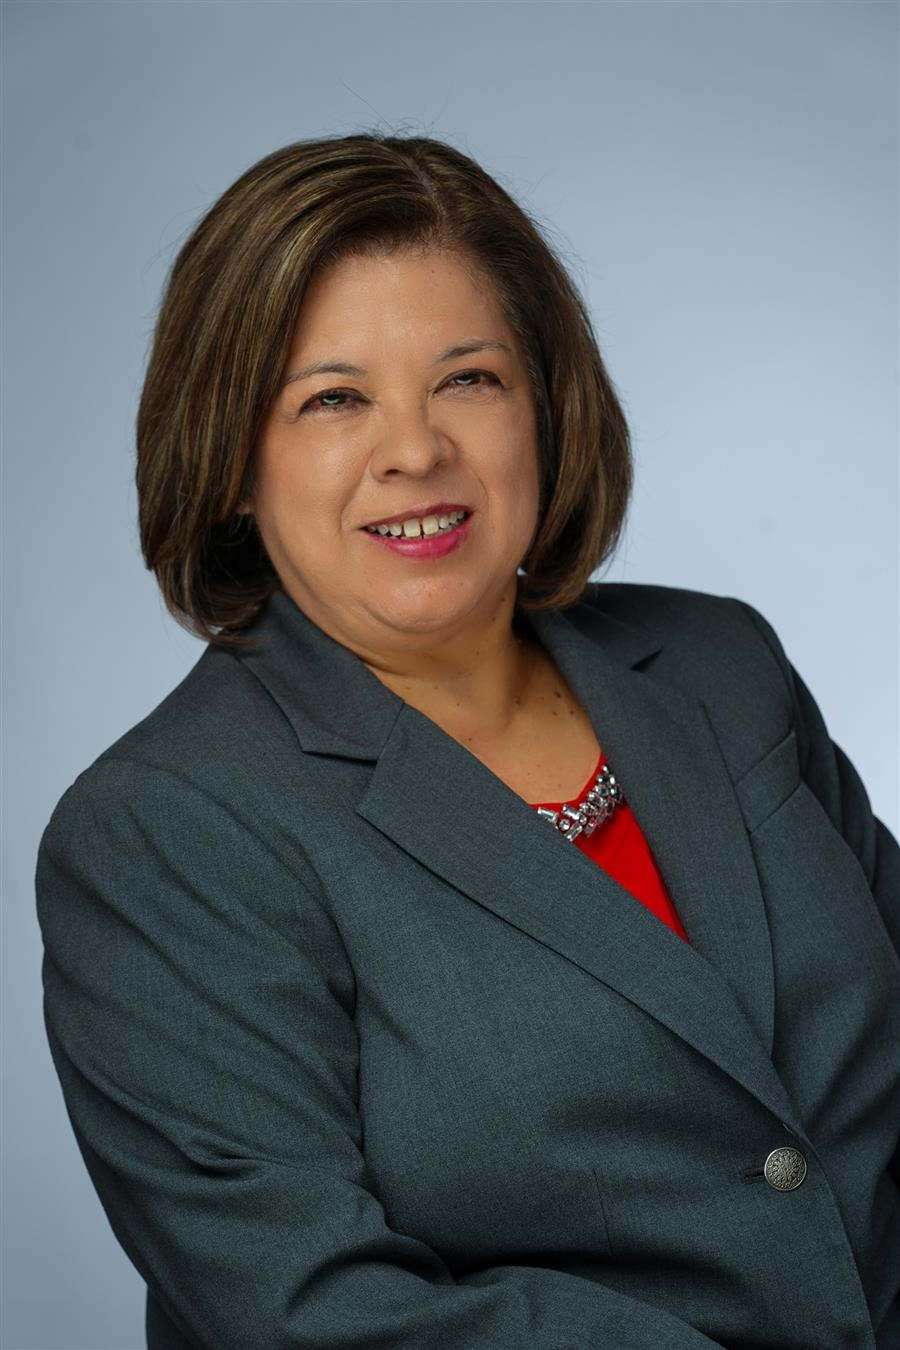 photo of Patty Moreno